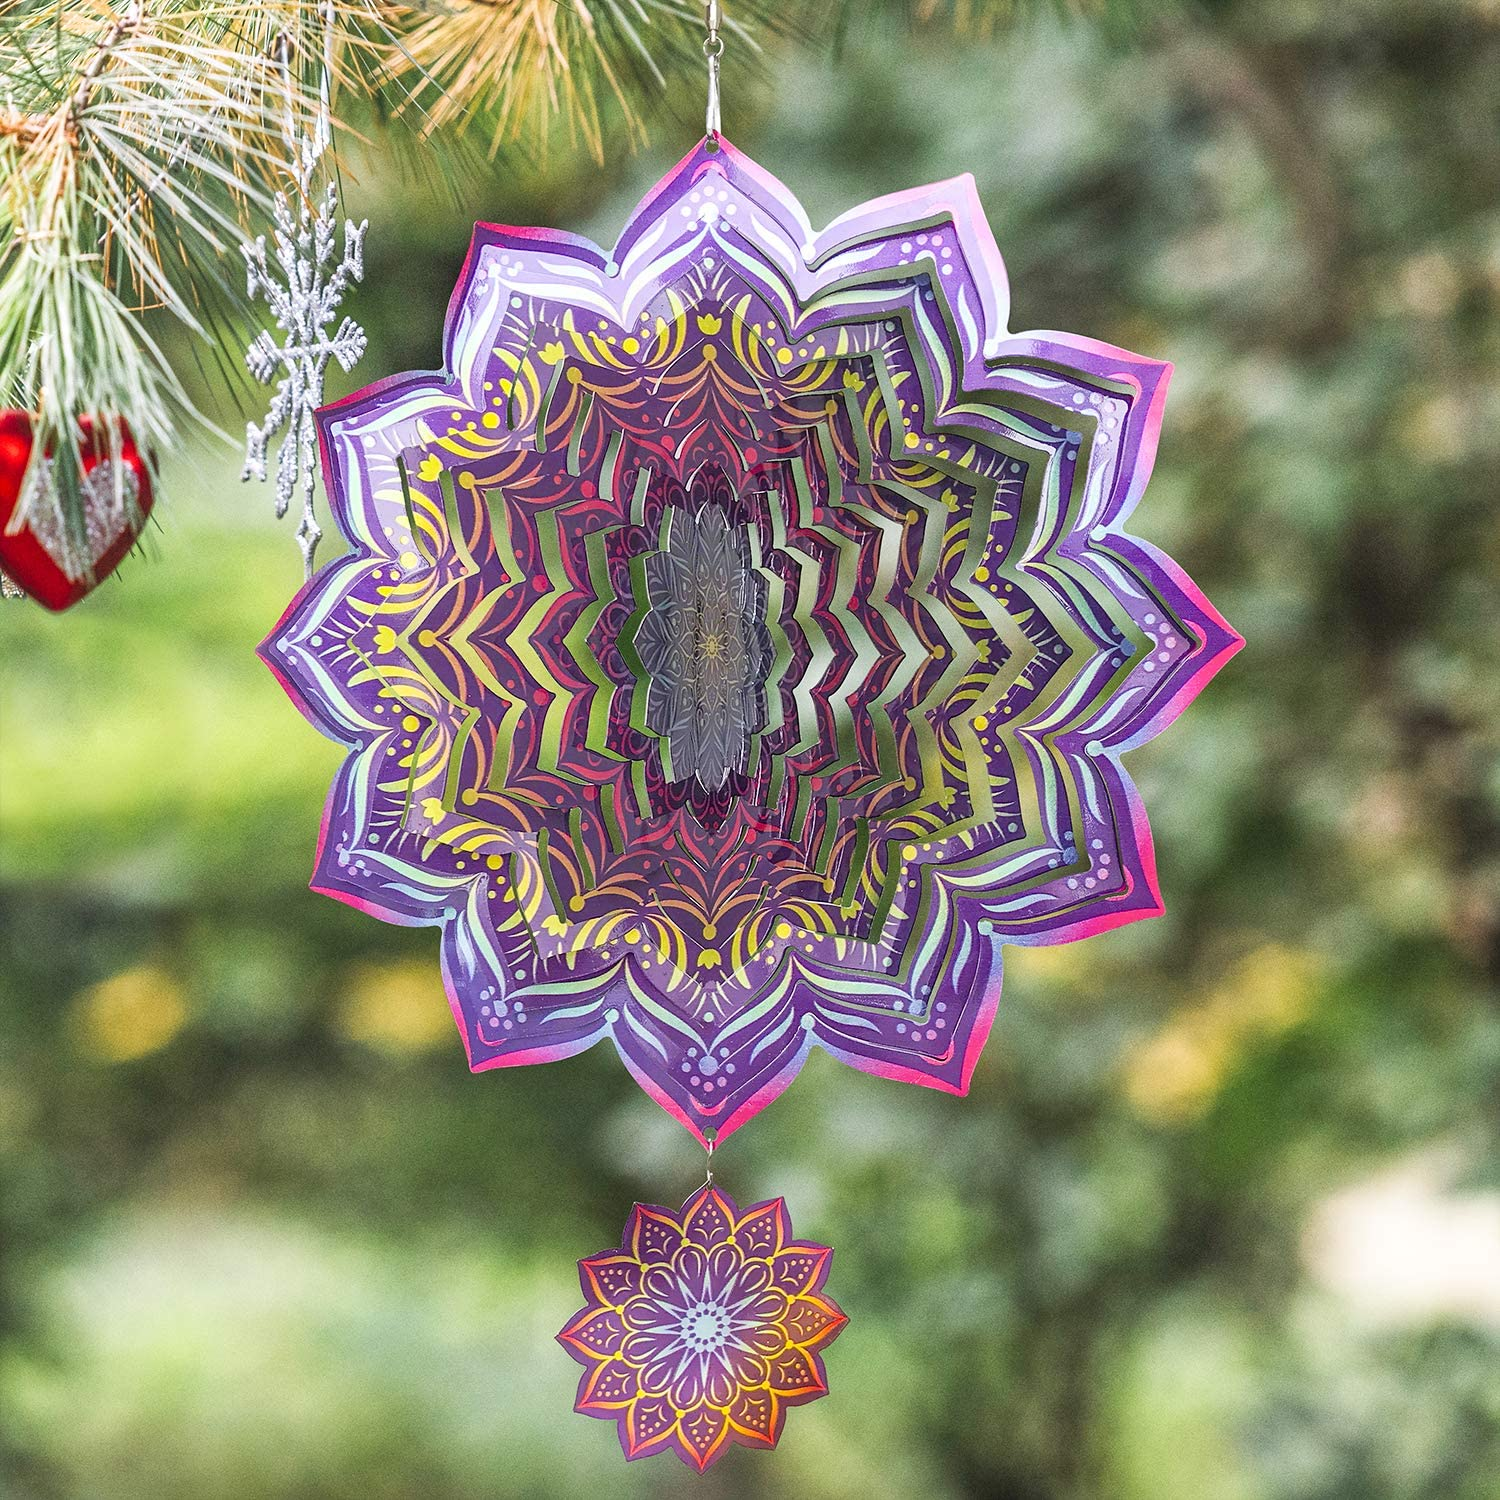 Wind Spinners Outdoor Metal Christmas Decorations Clearance | Stainless Steel Ornament for Mandala Garden Home Decor | Multi Color Metal Sun Catcher Art for Tree Pine Hanging, Backyard